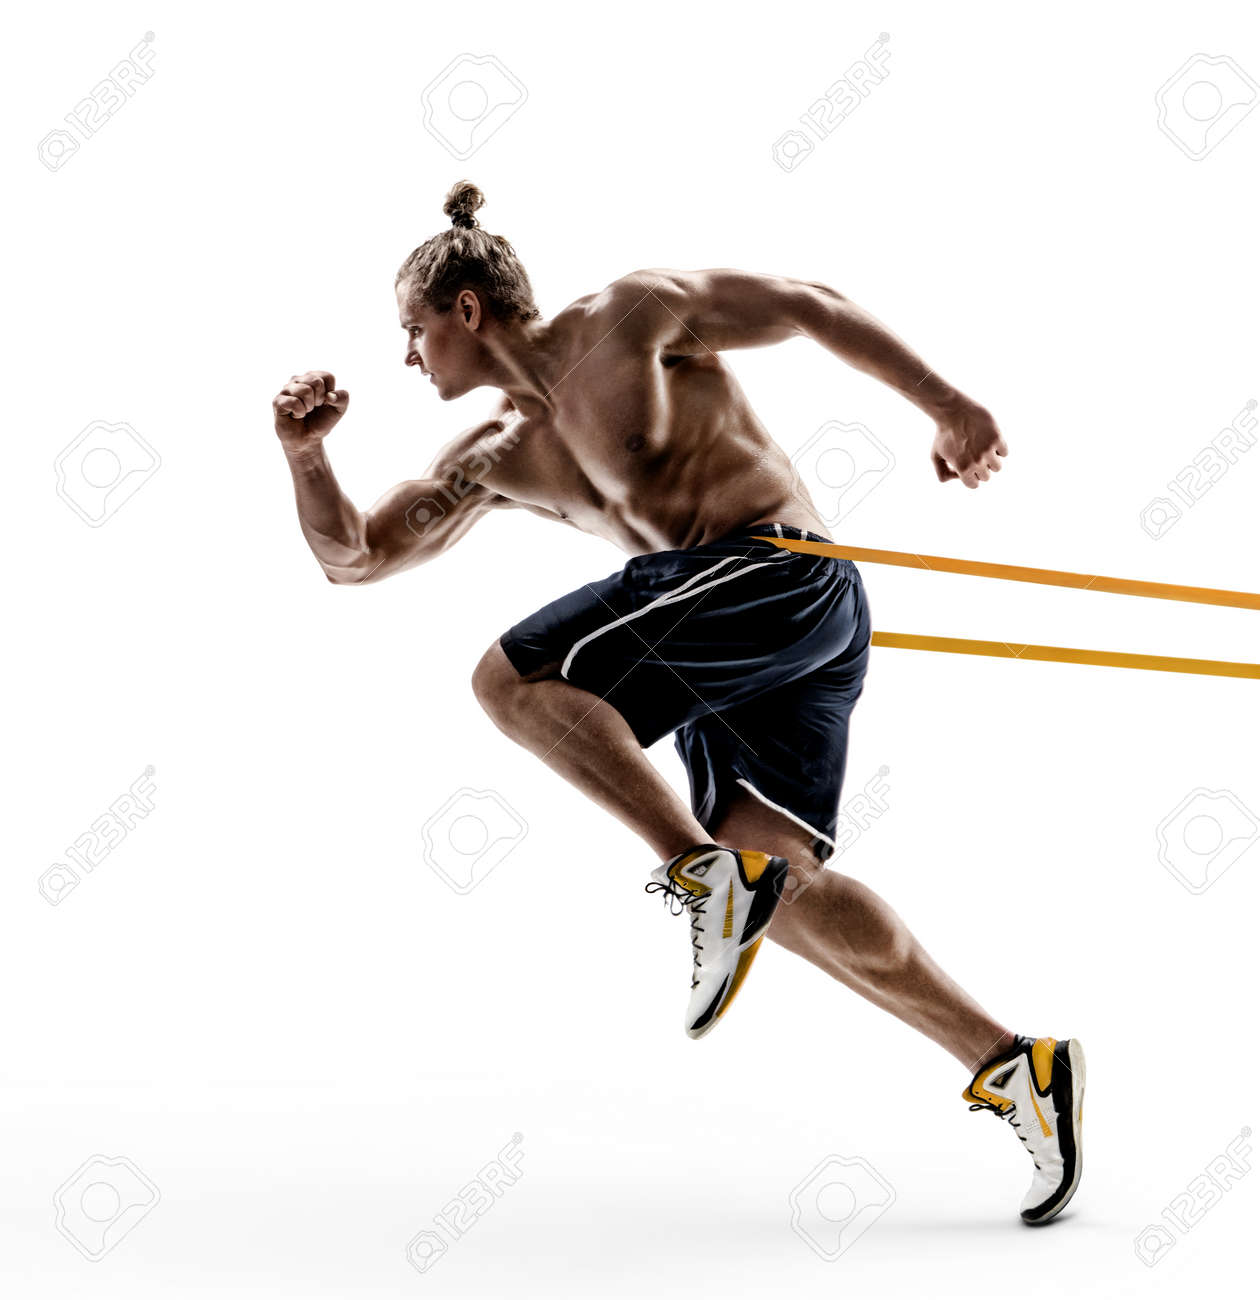 Sporty man runner in silhouette using a resistance band in his exercise routine. Photo of shirtless young man isolated on white background. Dynamic movement. Side view. Full length - 117020266